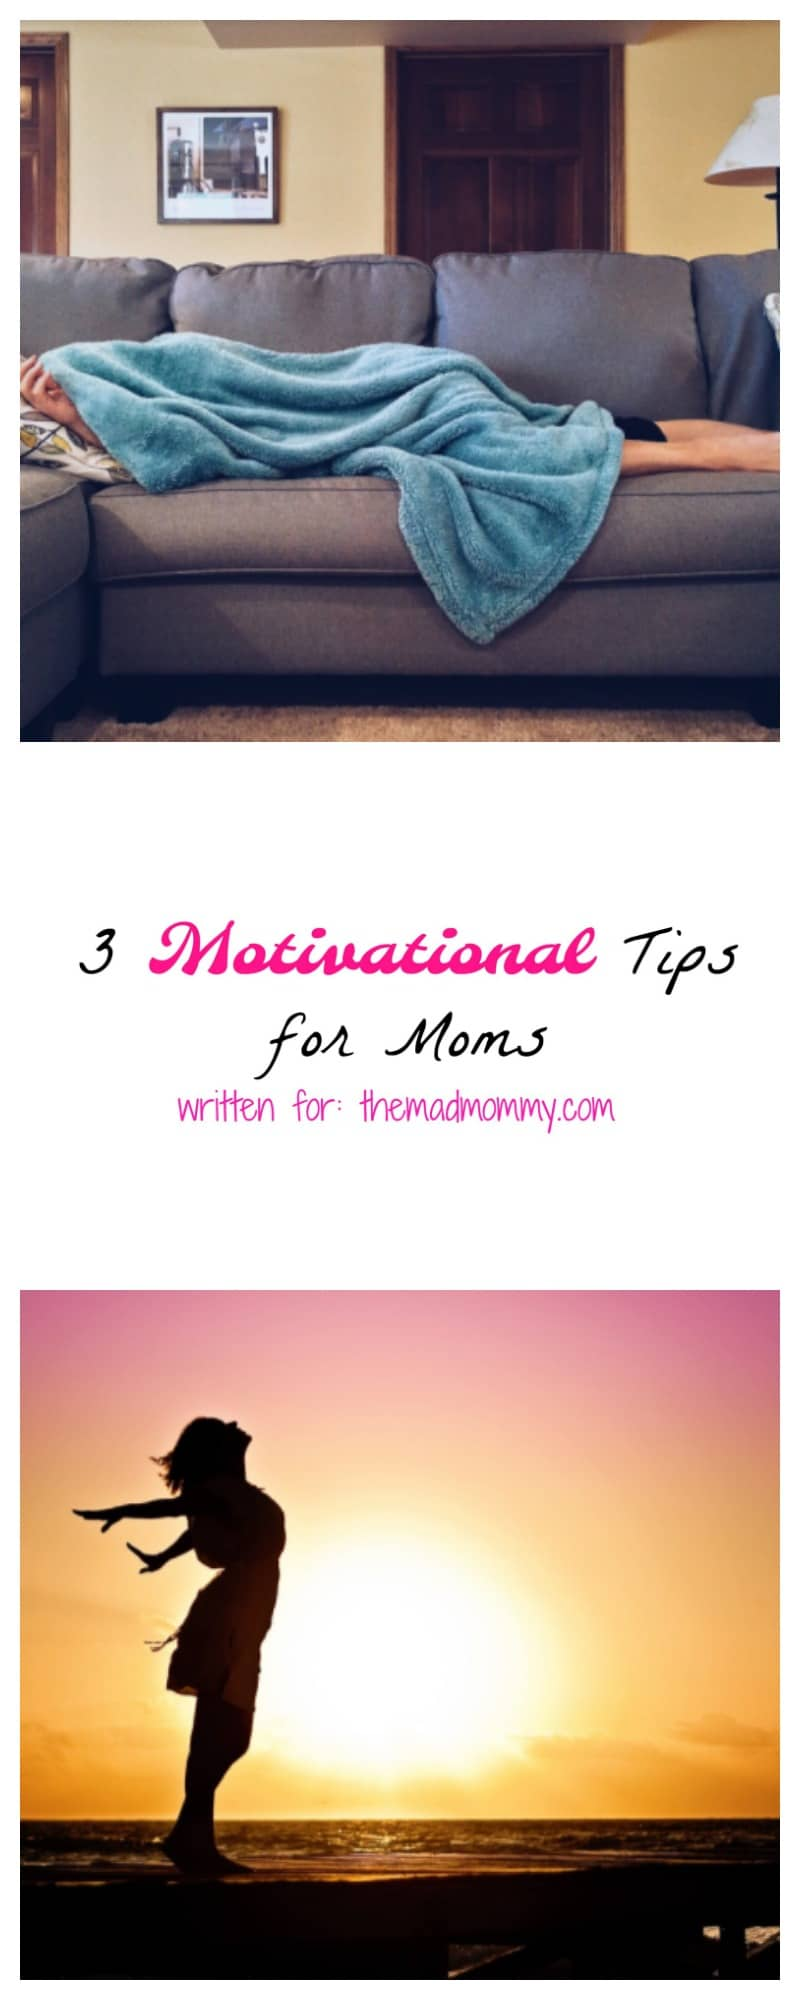 Unfortunately for many people, self-motivation may not always come easily, and far too often our excitement and passions can be lost in the humdrum of everyday life. Many mothers are experts at motivating kids and husbands, but we may find that there is little left for ourselves afterwards. Here are some motivational tips for moms that may help.